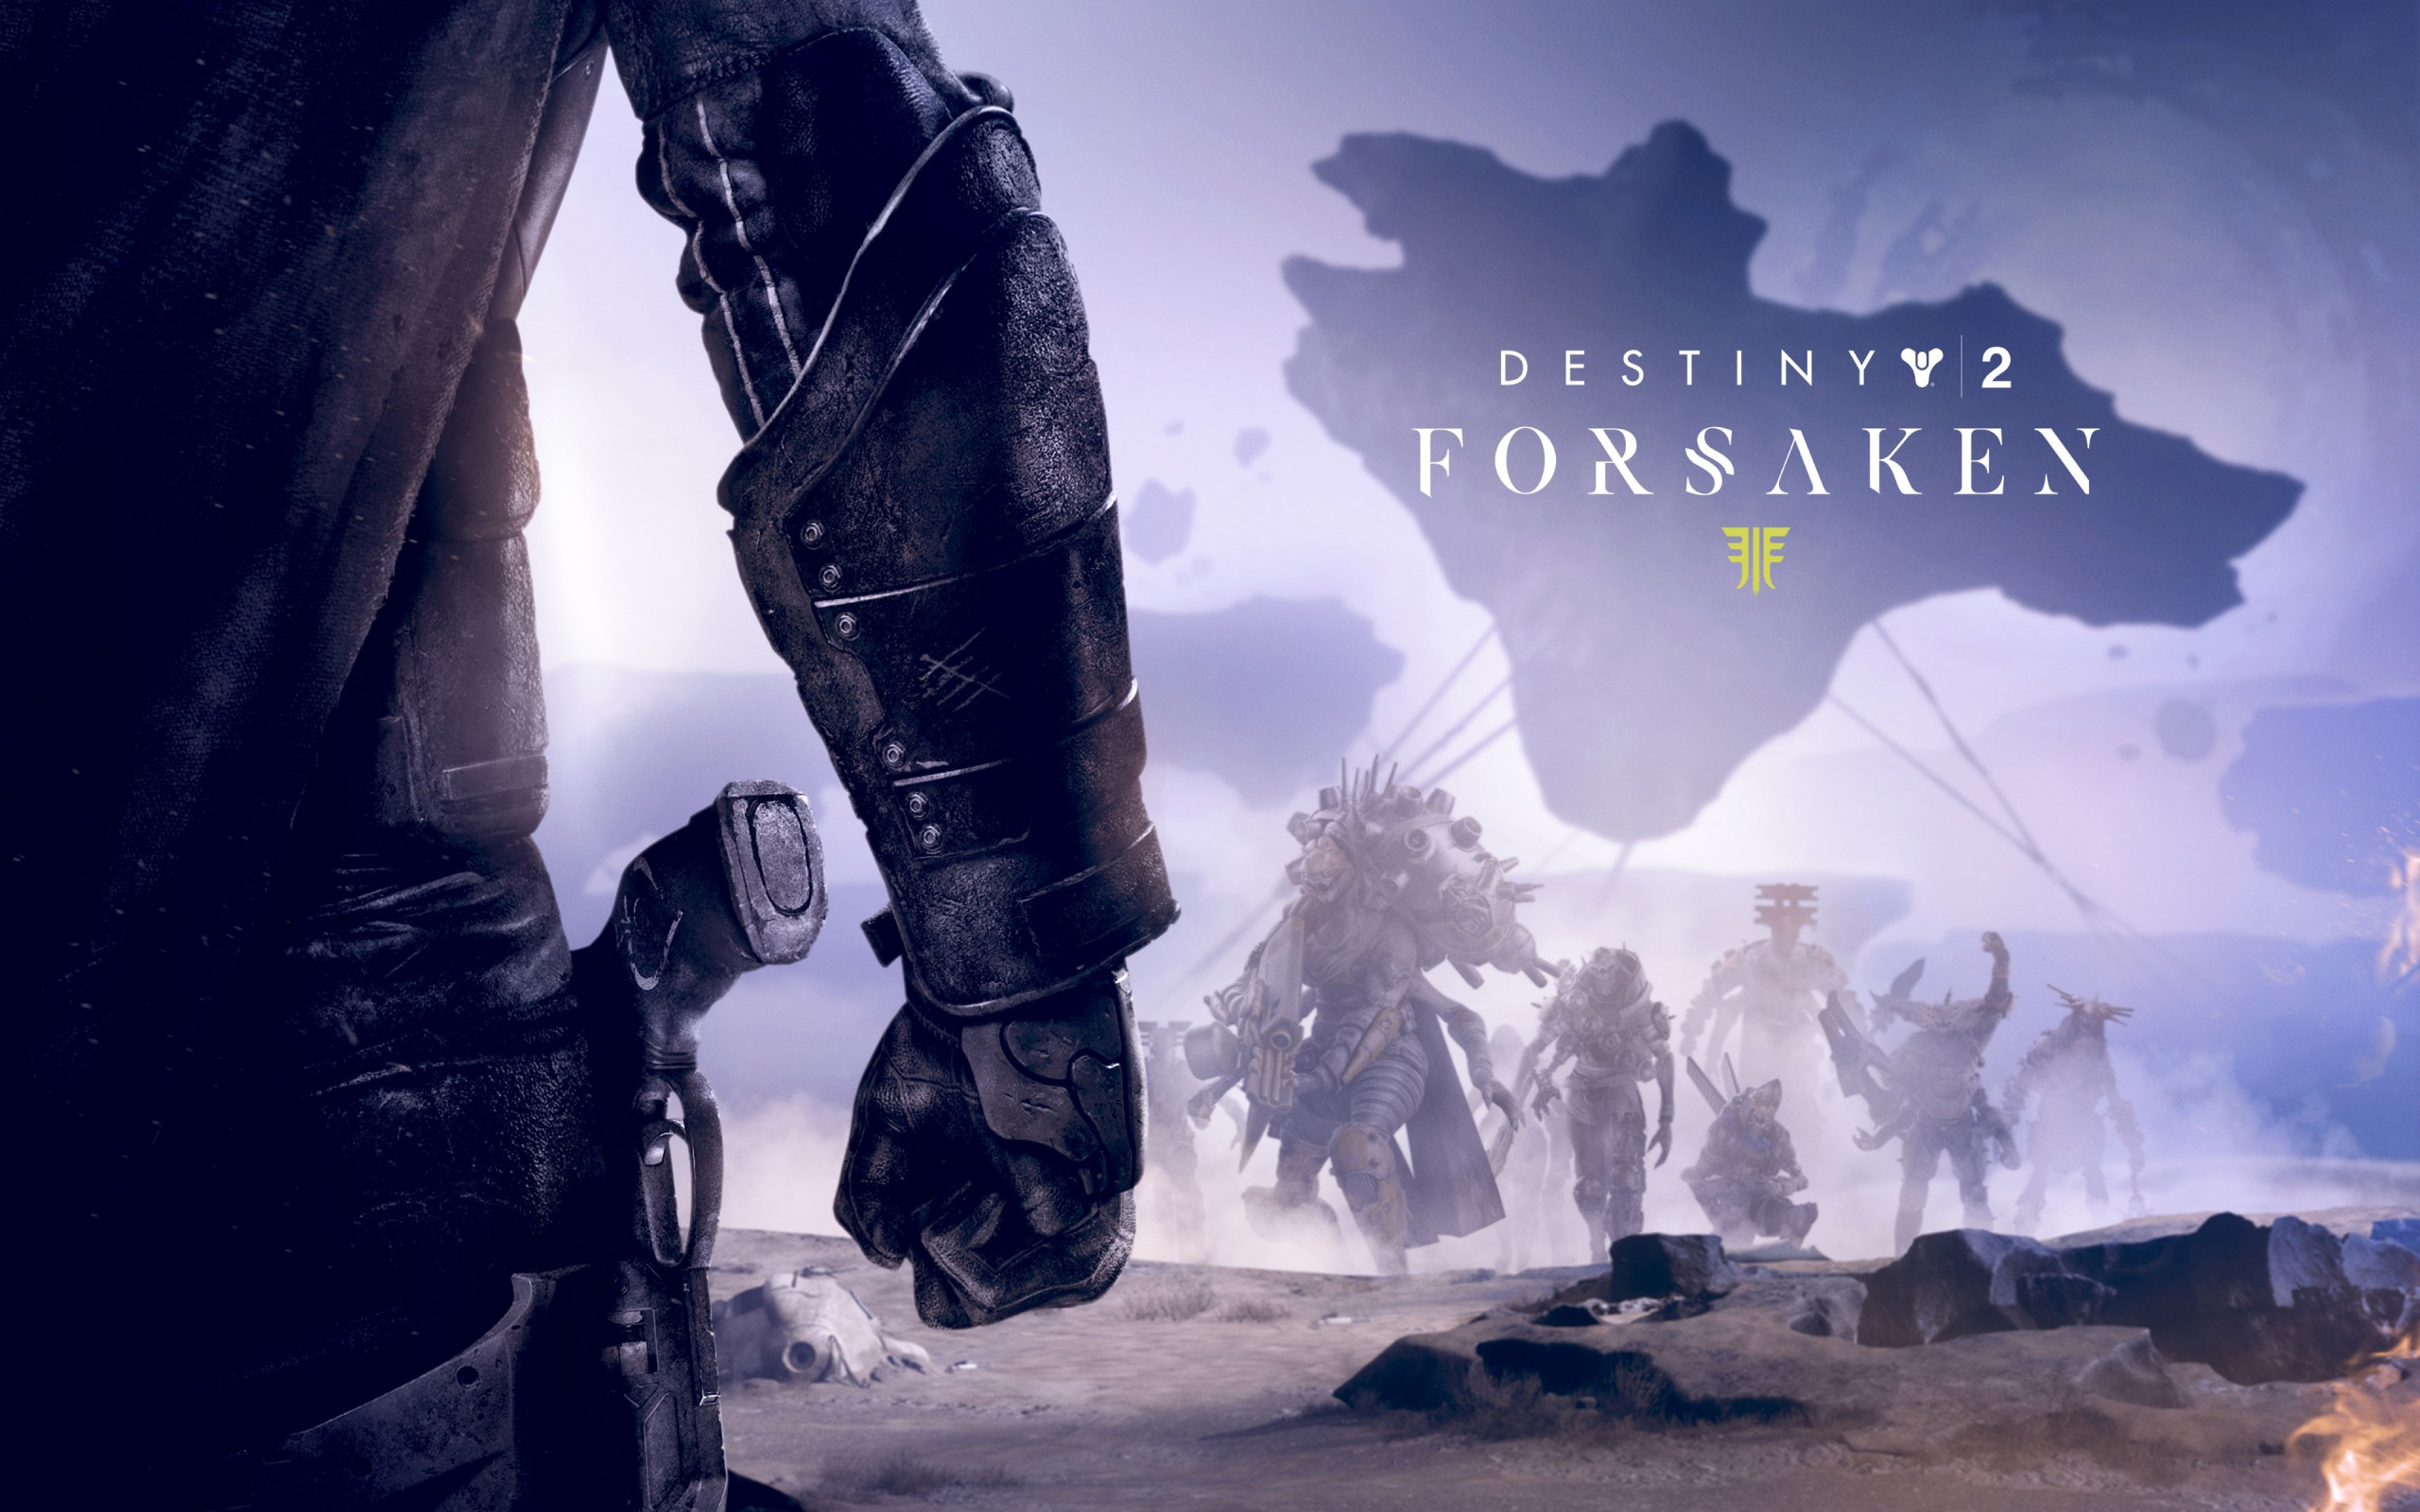 Destiny 2 Forsaken wallpaper 2560x1600